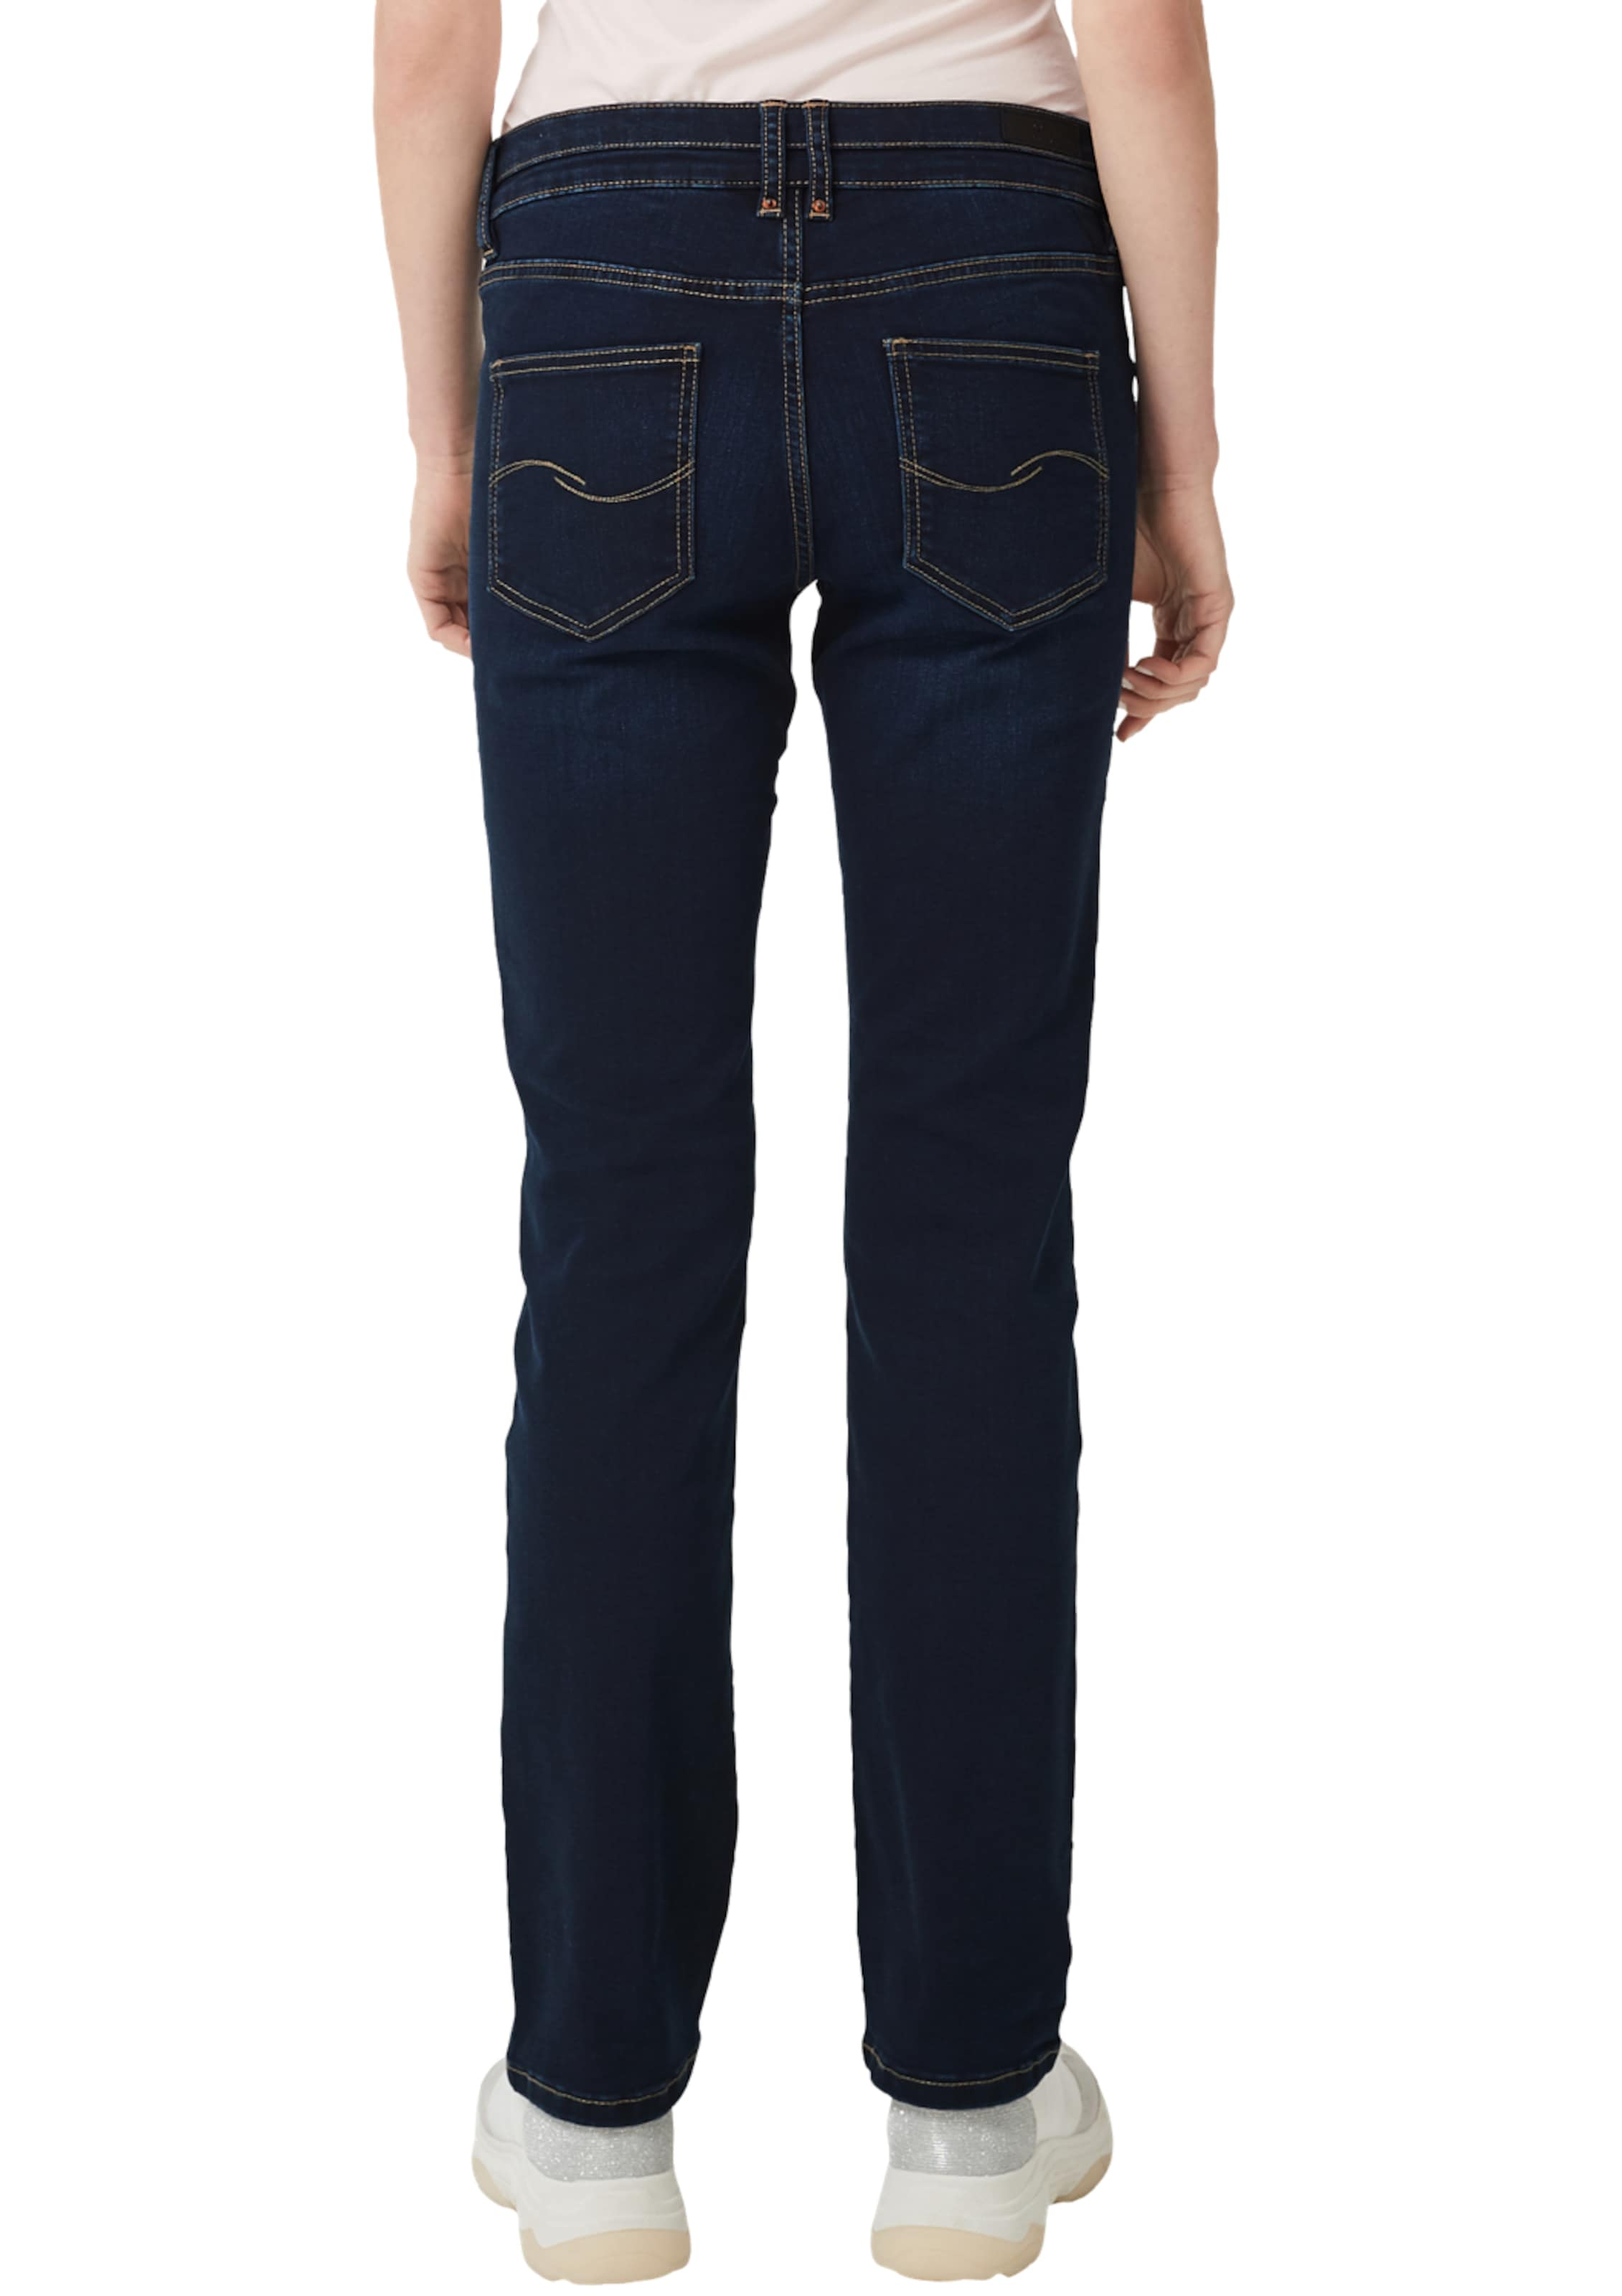 s StraightStretchjeans Q Blau In Designed By Catie OXZTkuPi